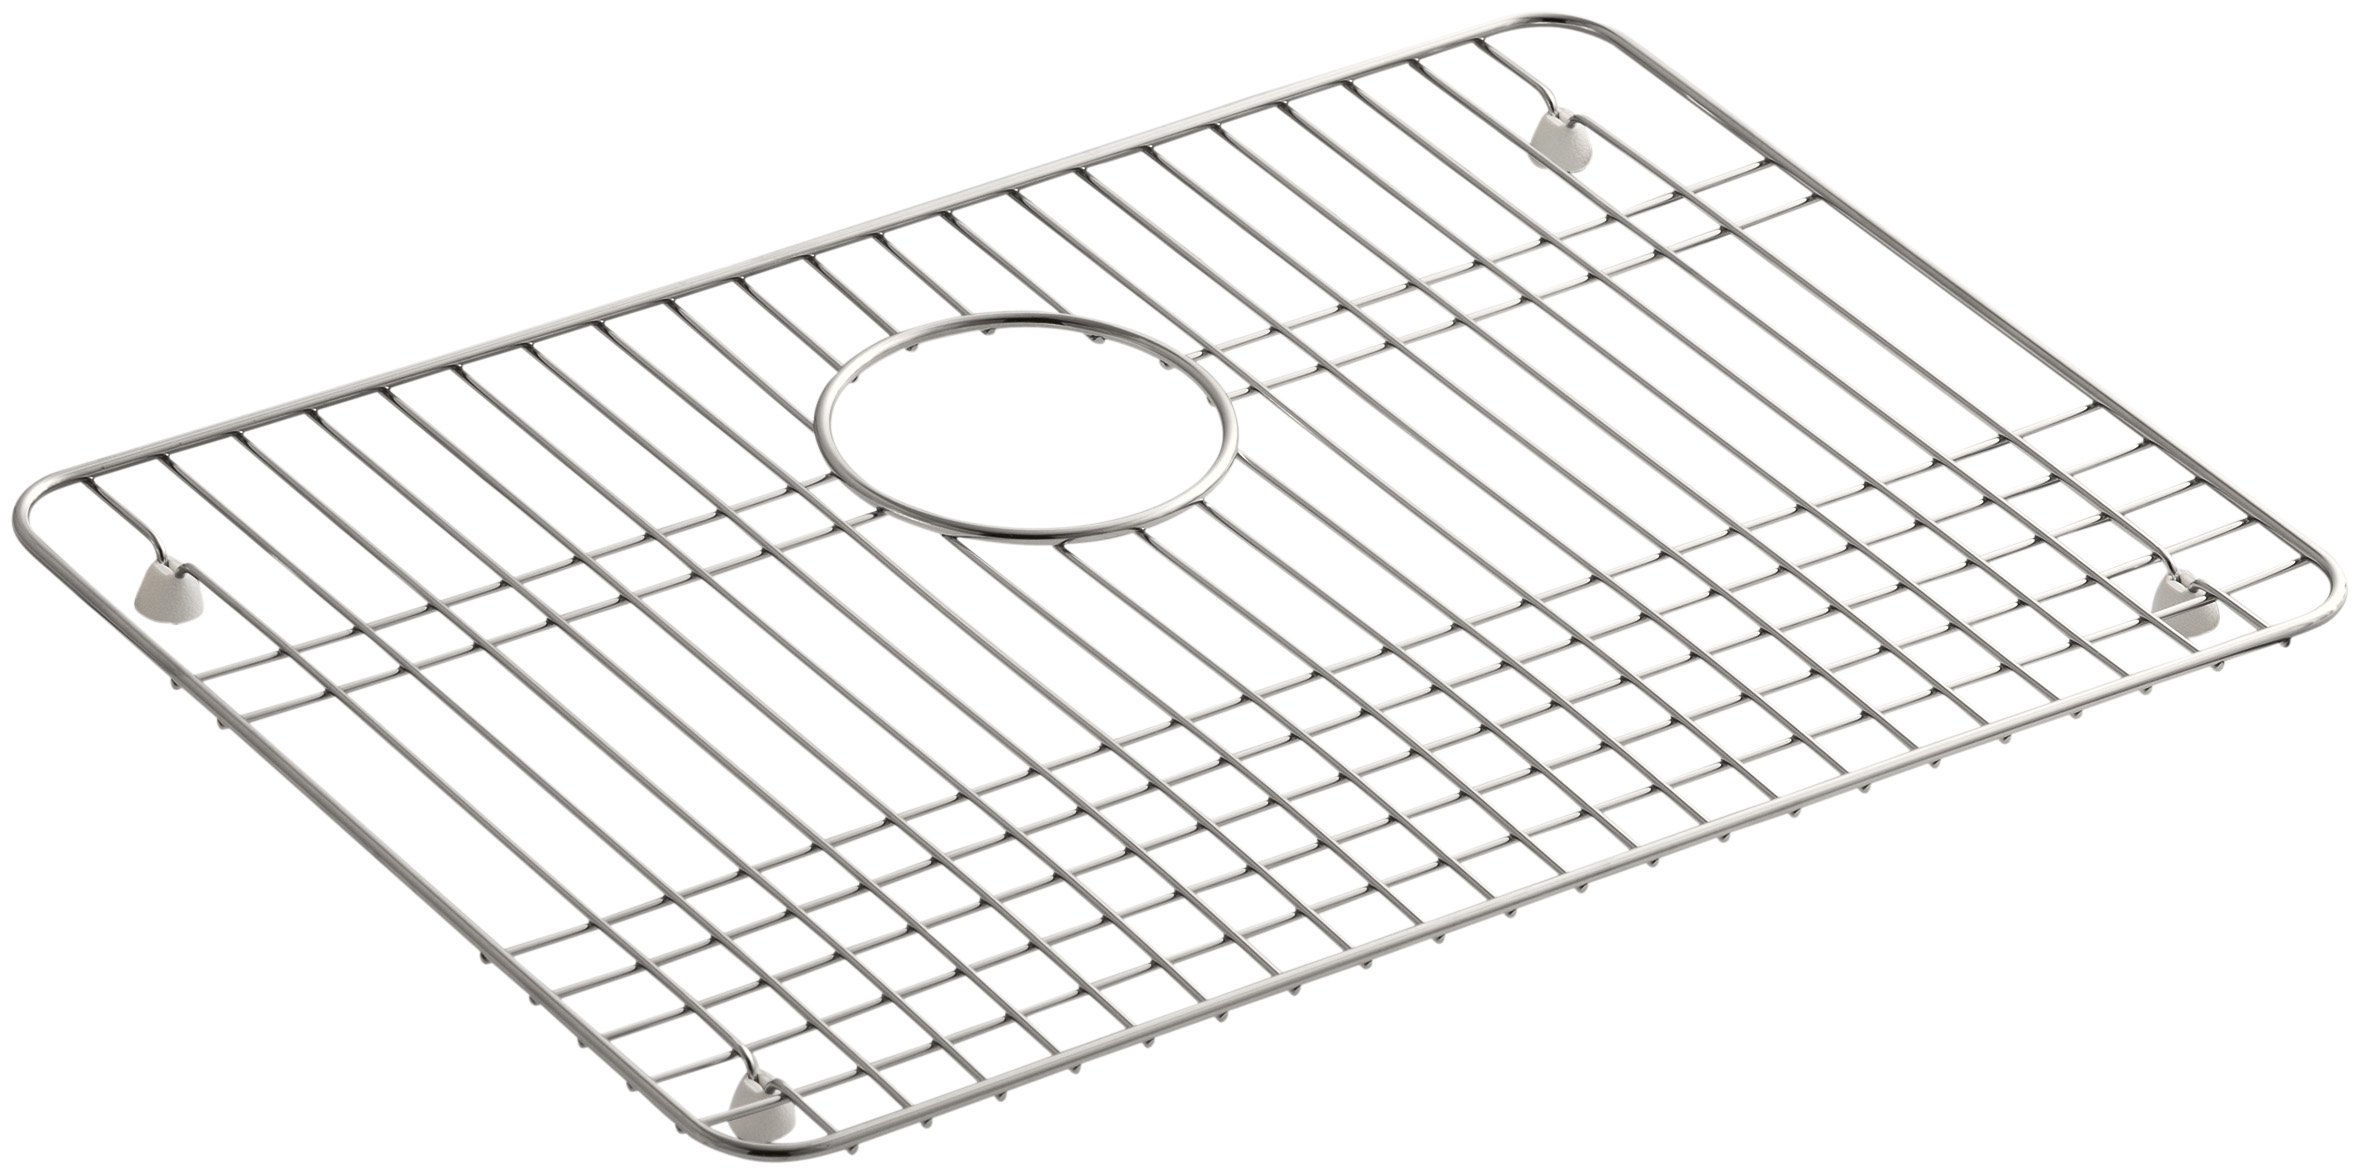 K-3192-ST Sink Rack for Ballad Utility Sink and Select Undertone and Iron/Tones Kitchen Sinks, Stainless Steel by Kohler (Image #1)